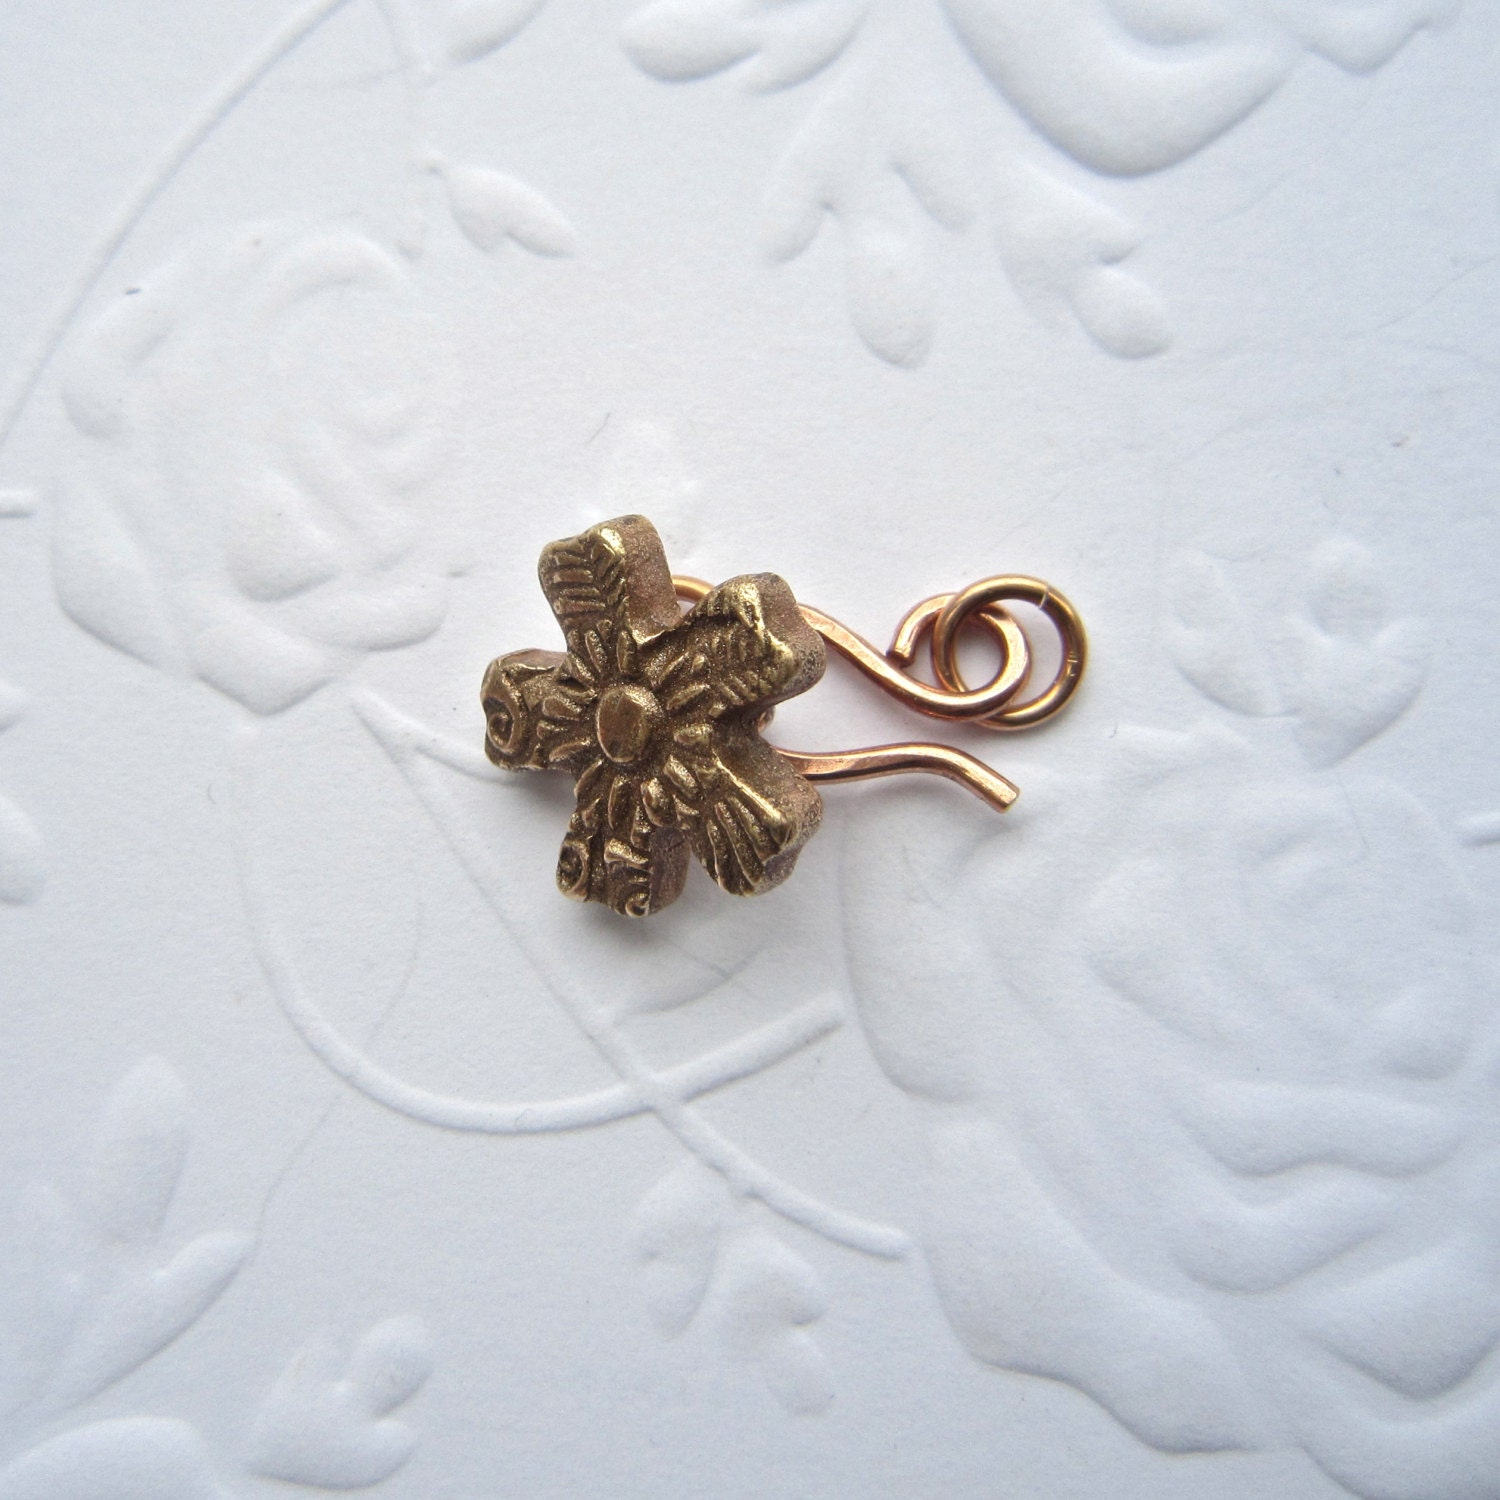 Bronze clasp set, button and hook clasp,floer clasp, handmade clasp, - THEAtoo